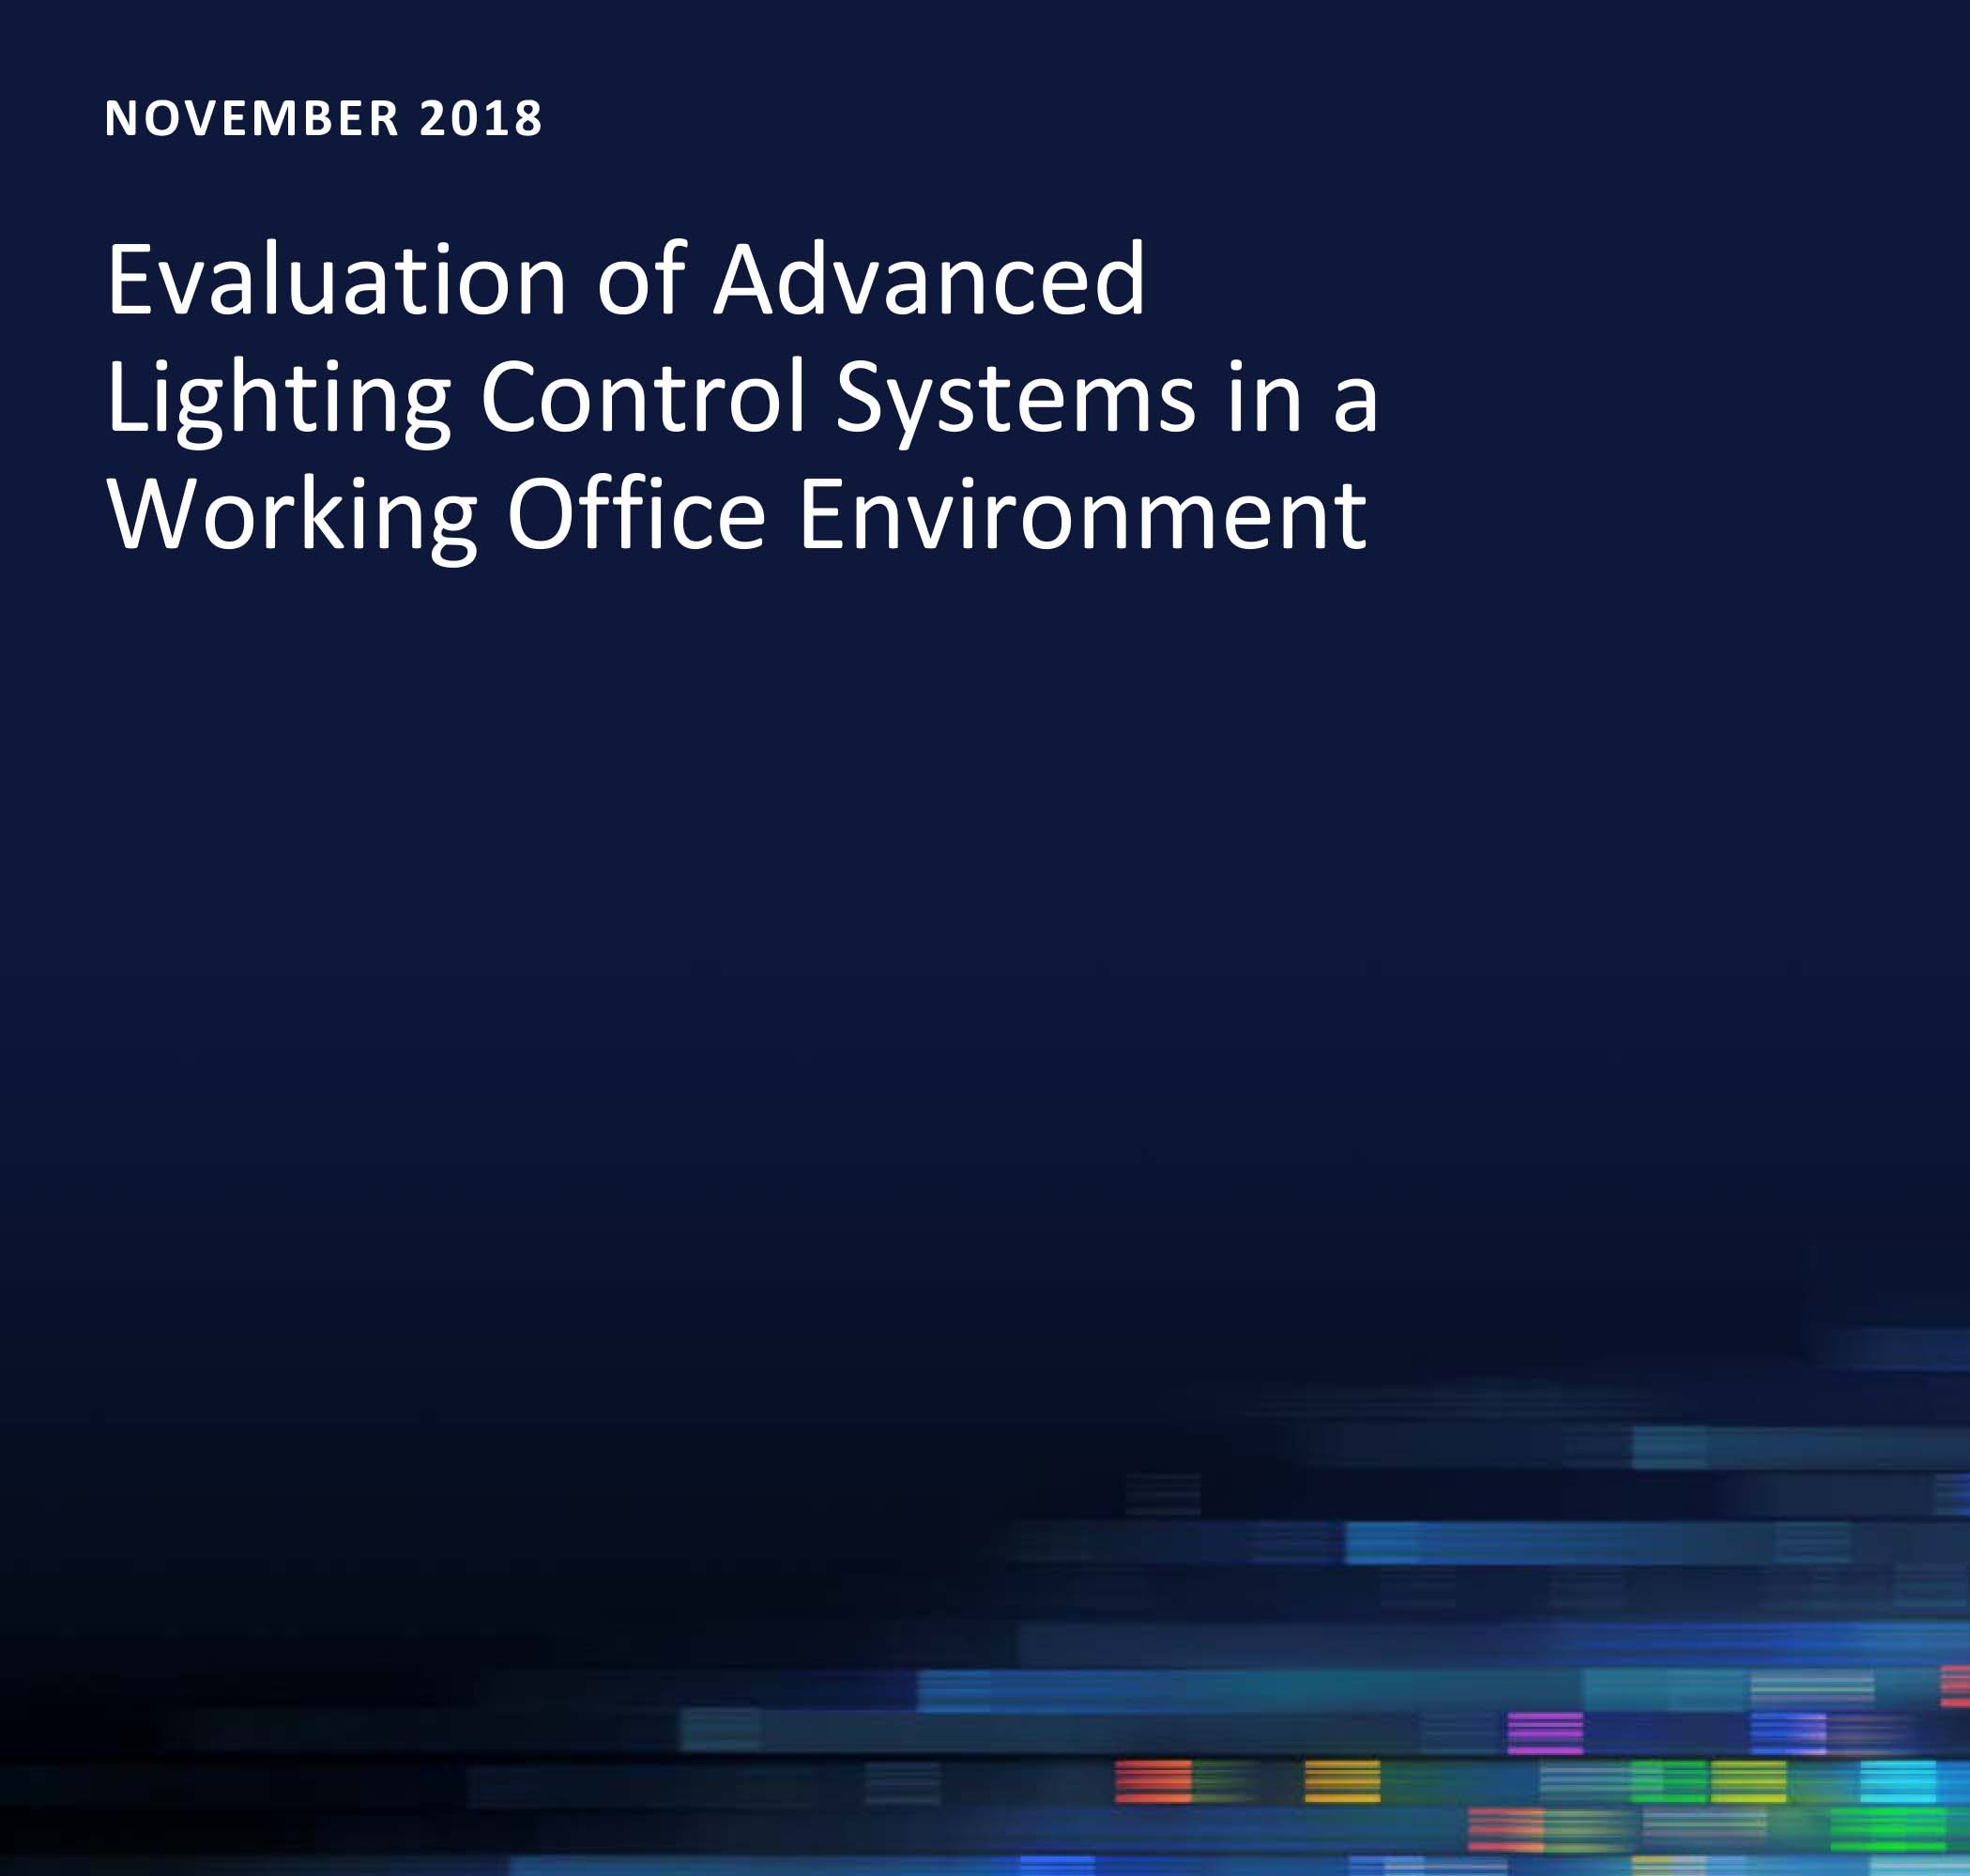 Evaluation of Advanced Lighting Control Systems in a Working Office Environment